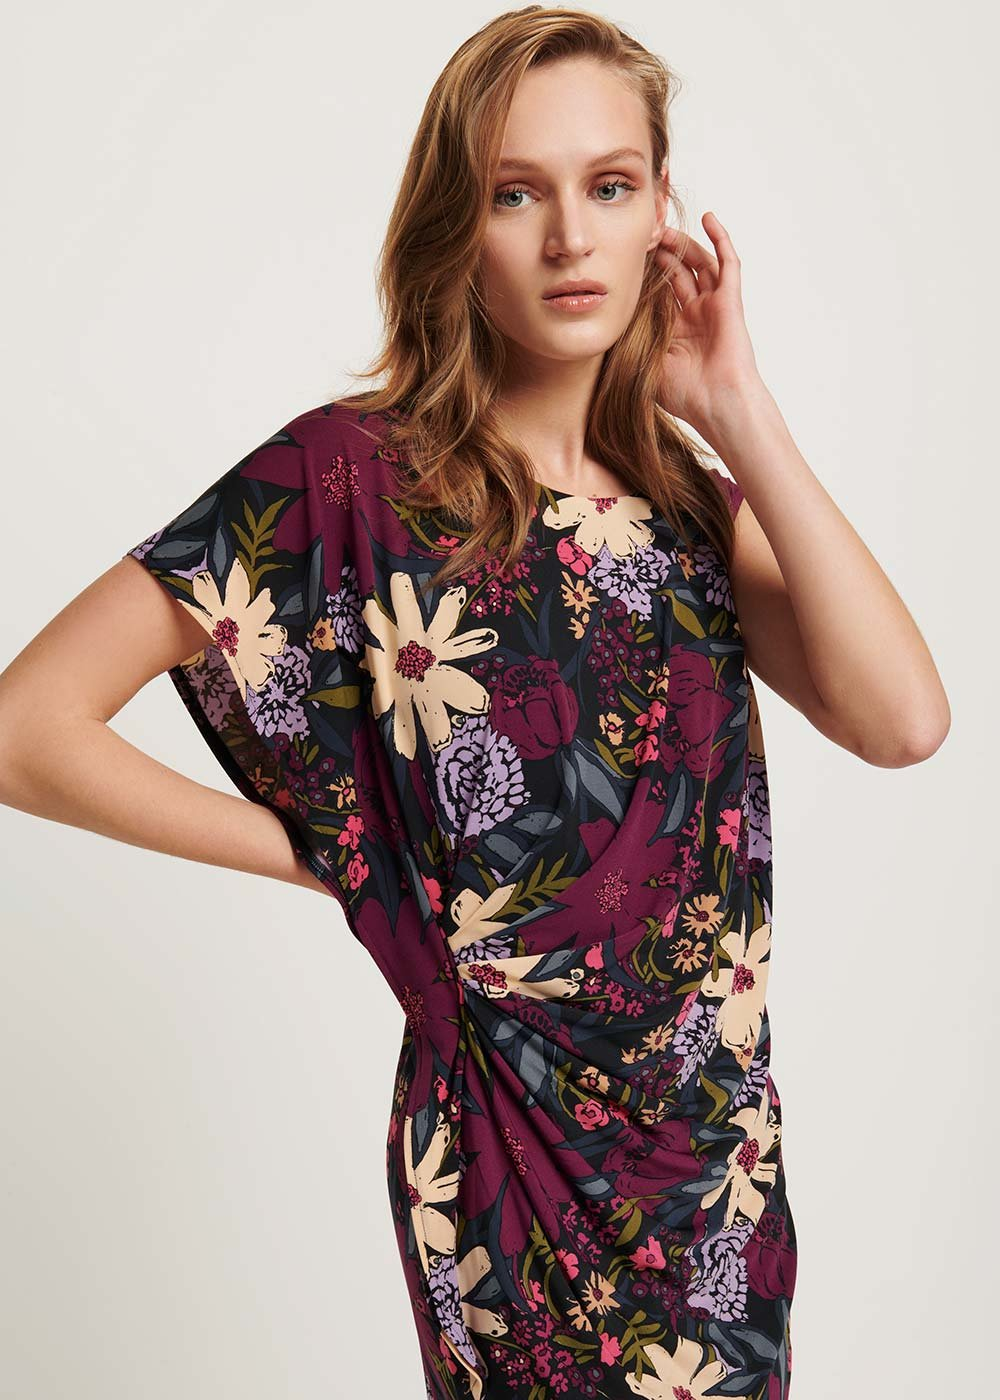 Aster dress with floral pattern - Black / Dalia / Fantasia - Woman